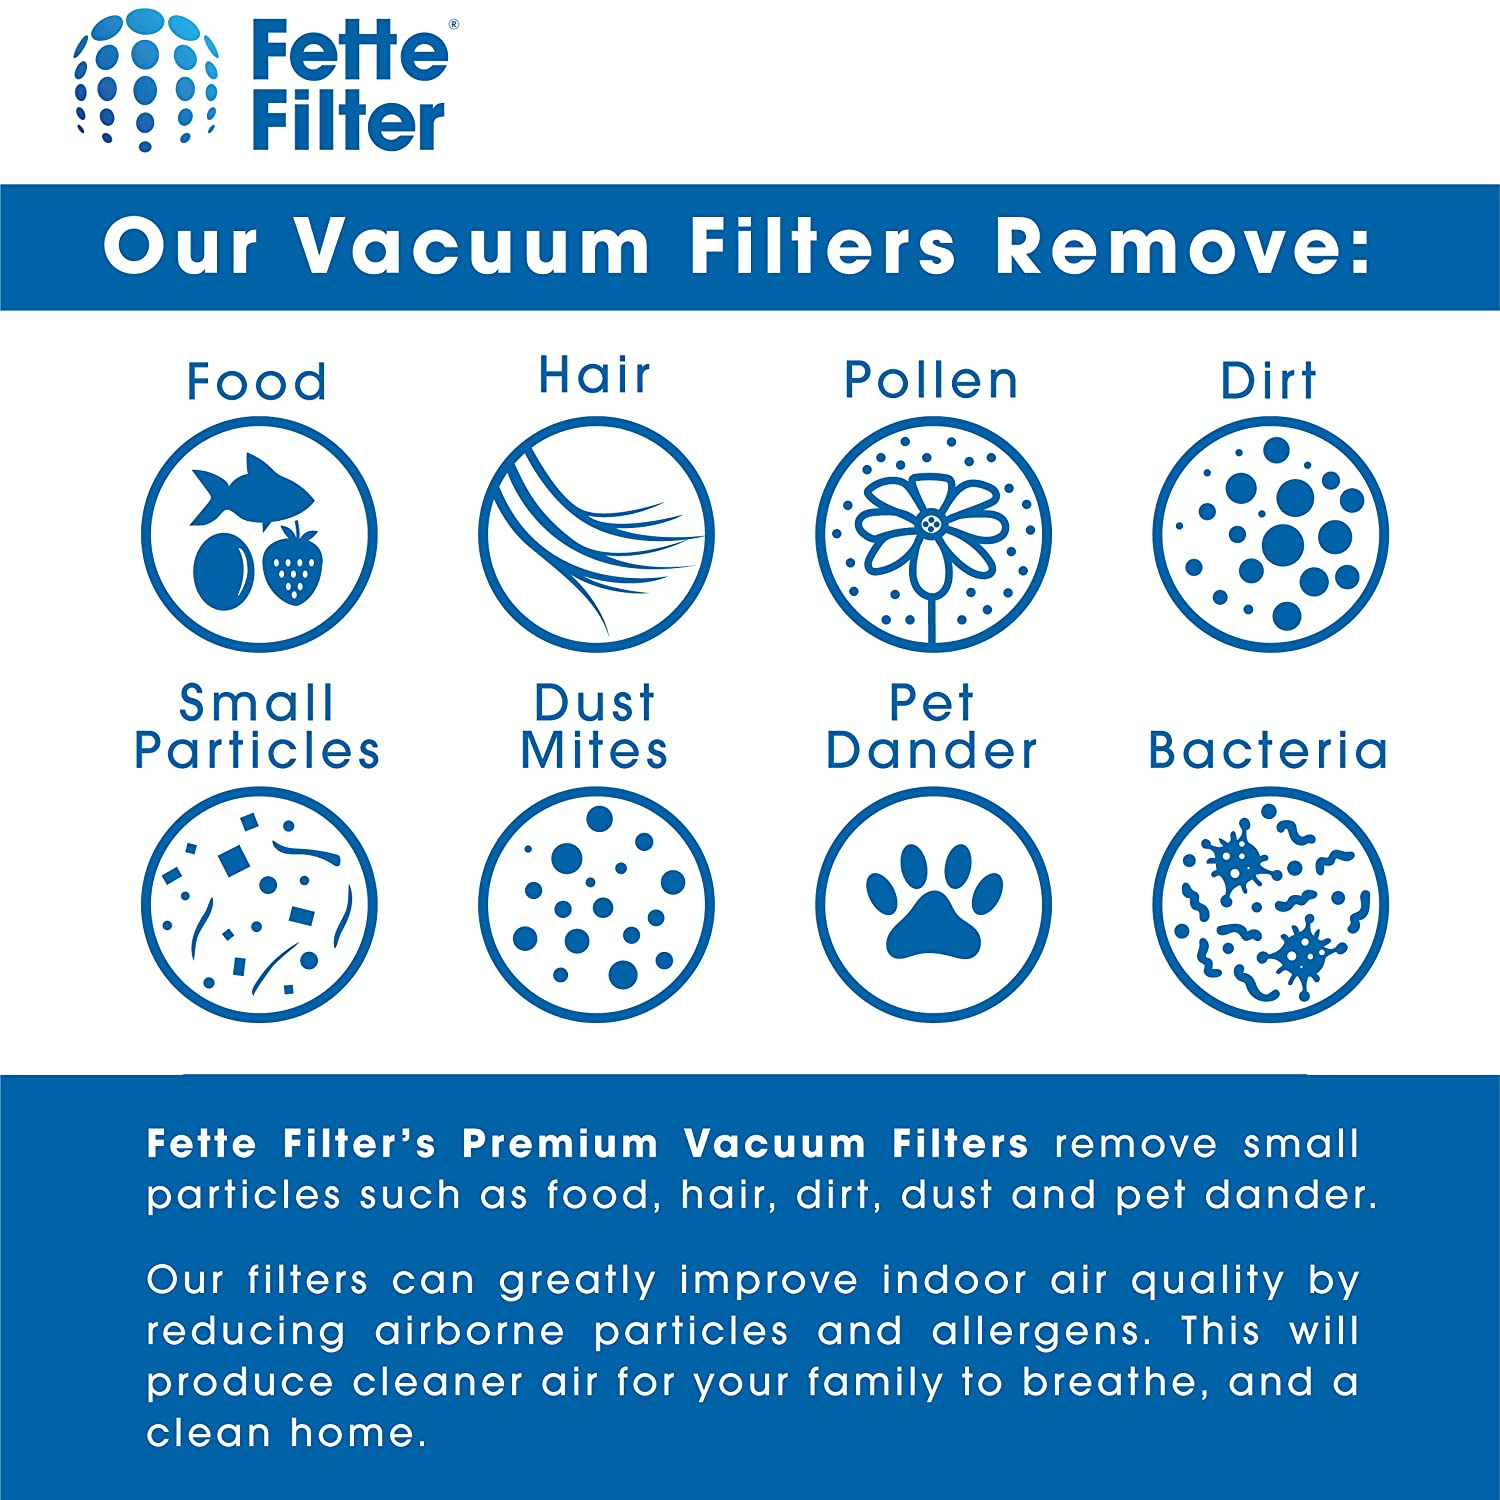 Amazon.com: Fette Filter - Filtro de vacío AirRam compatible ...